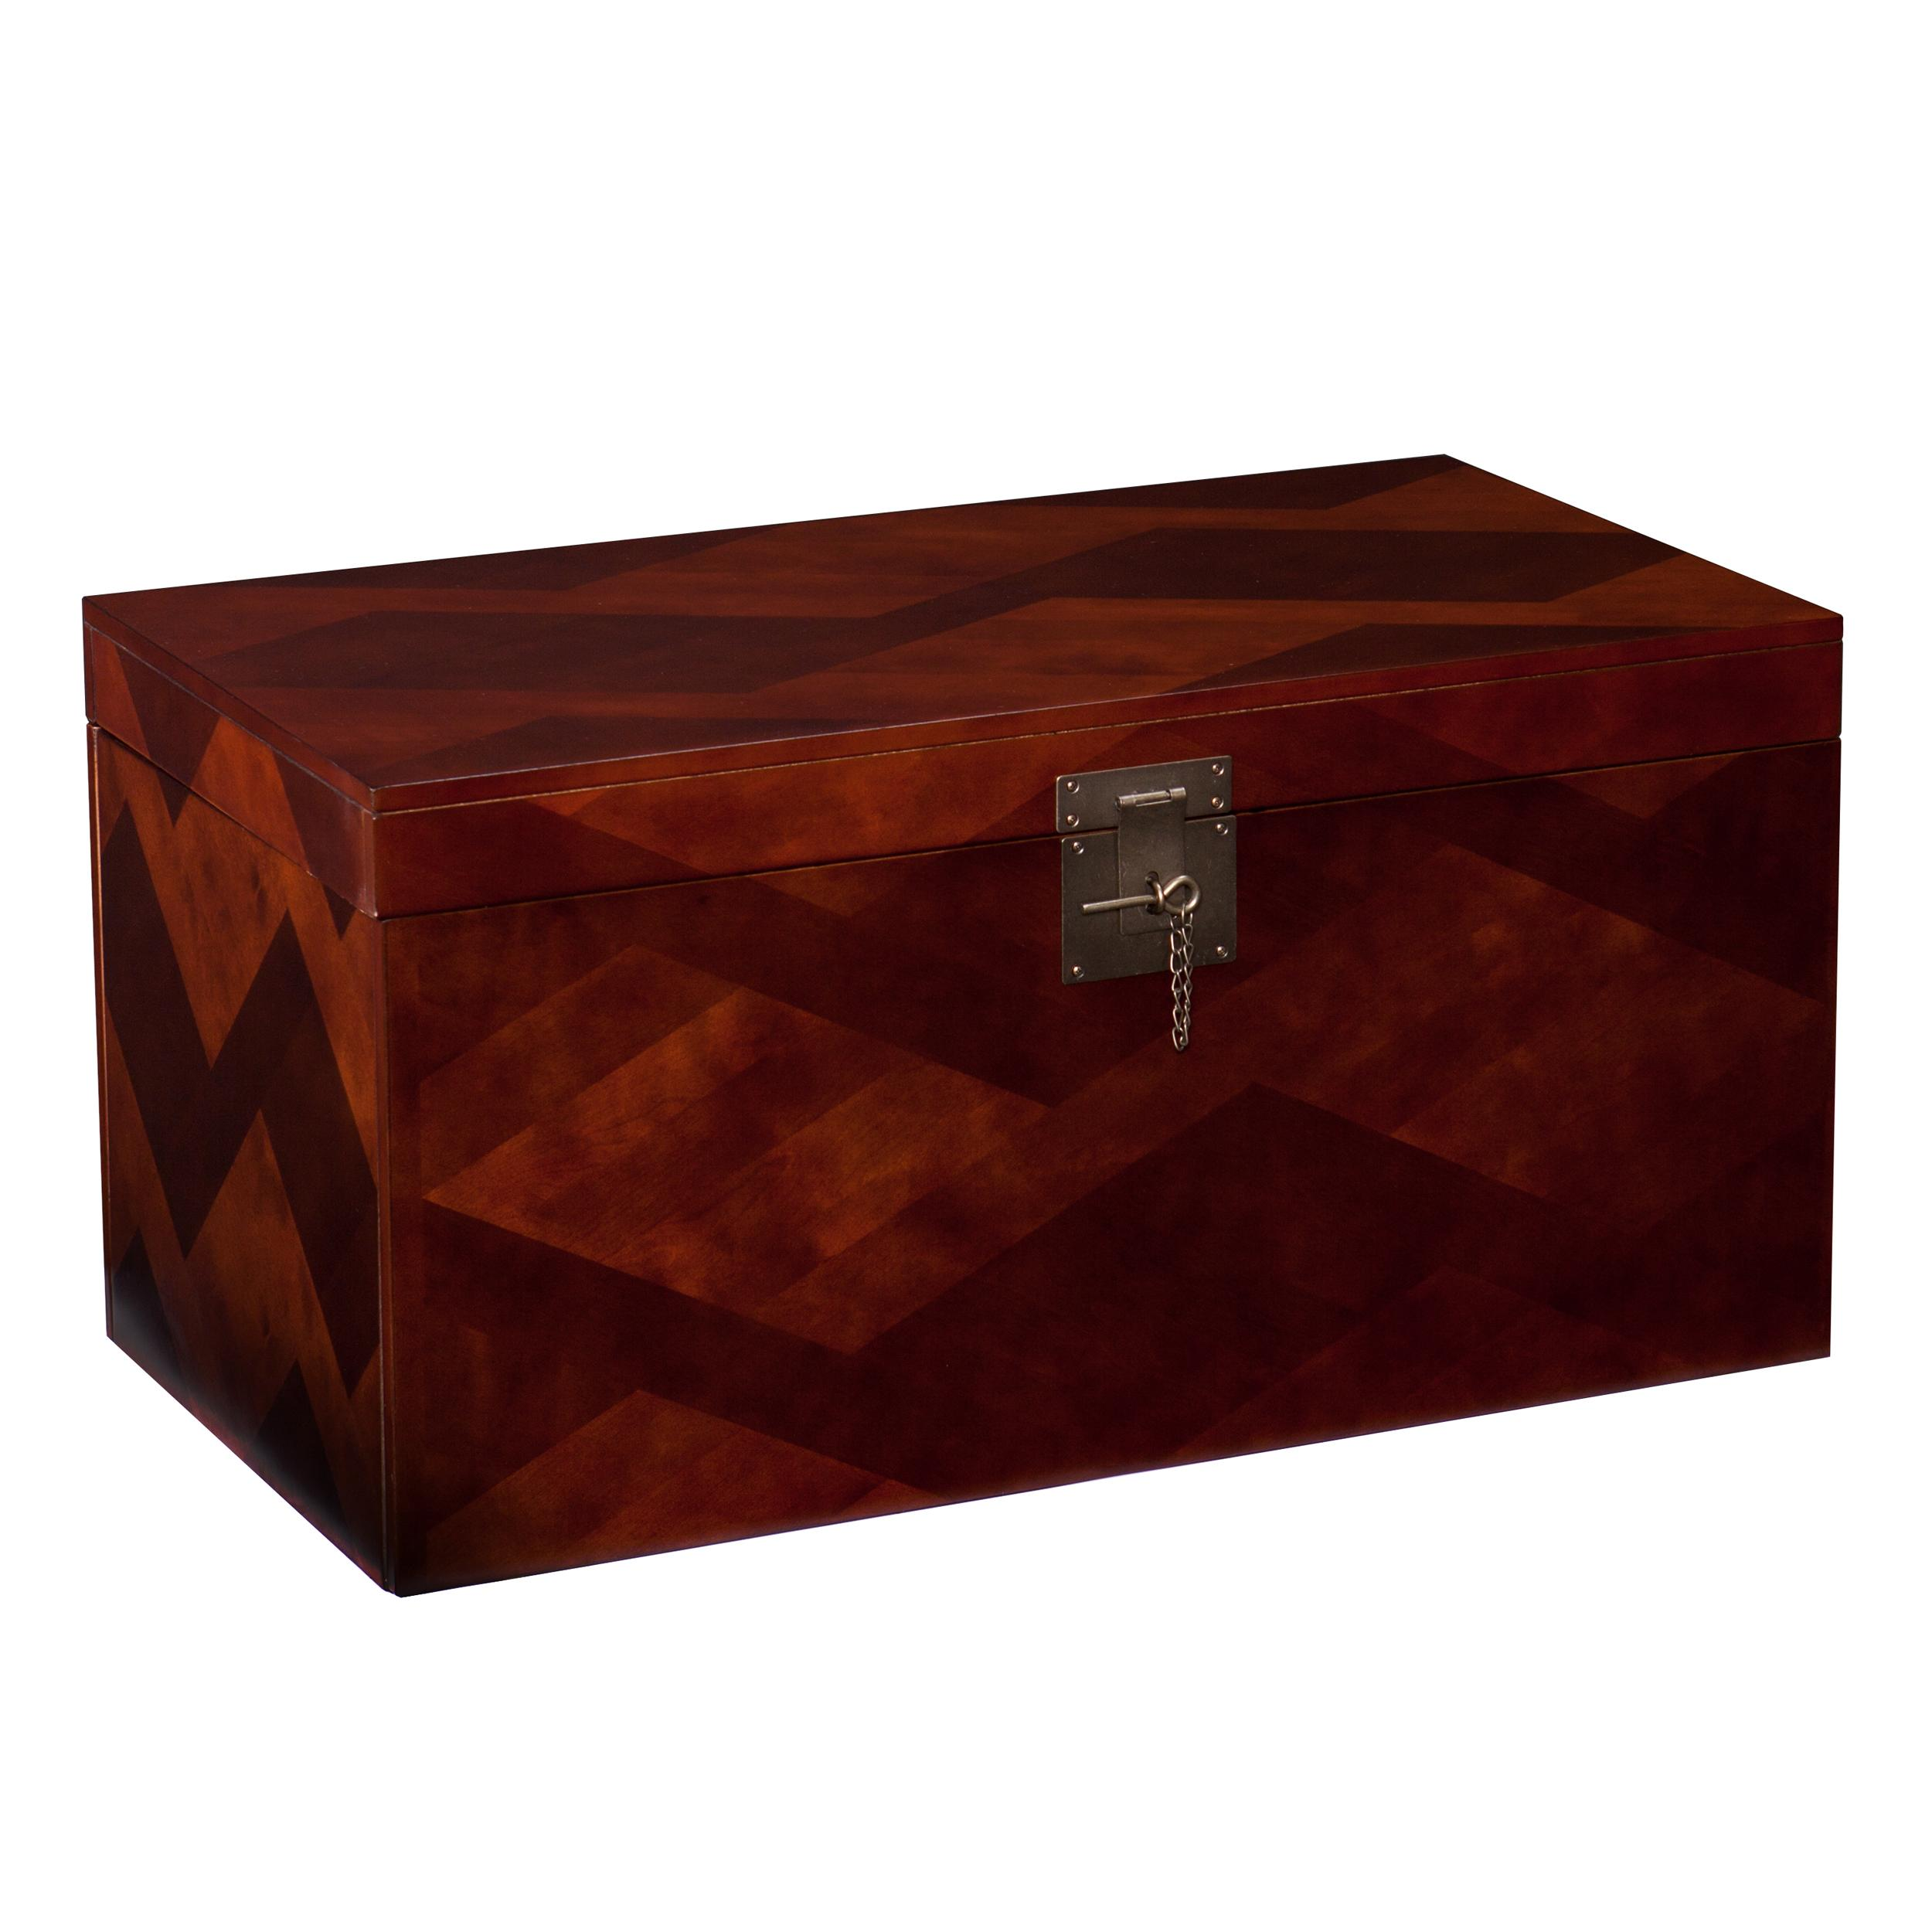 Cherry Wood Trunk Coffee Table: View Larger